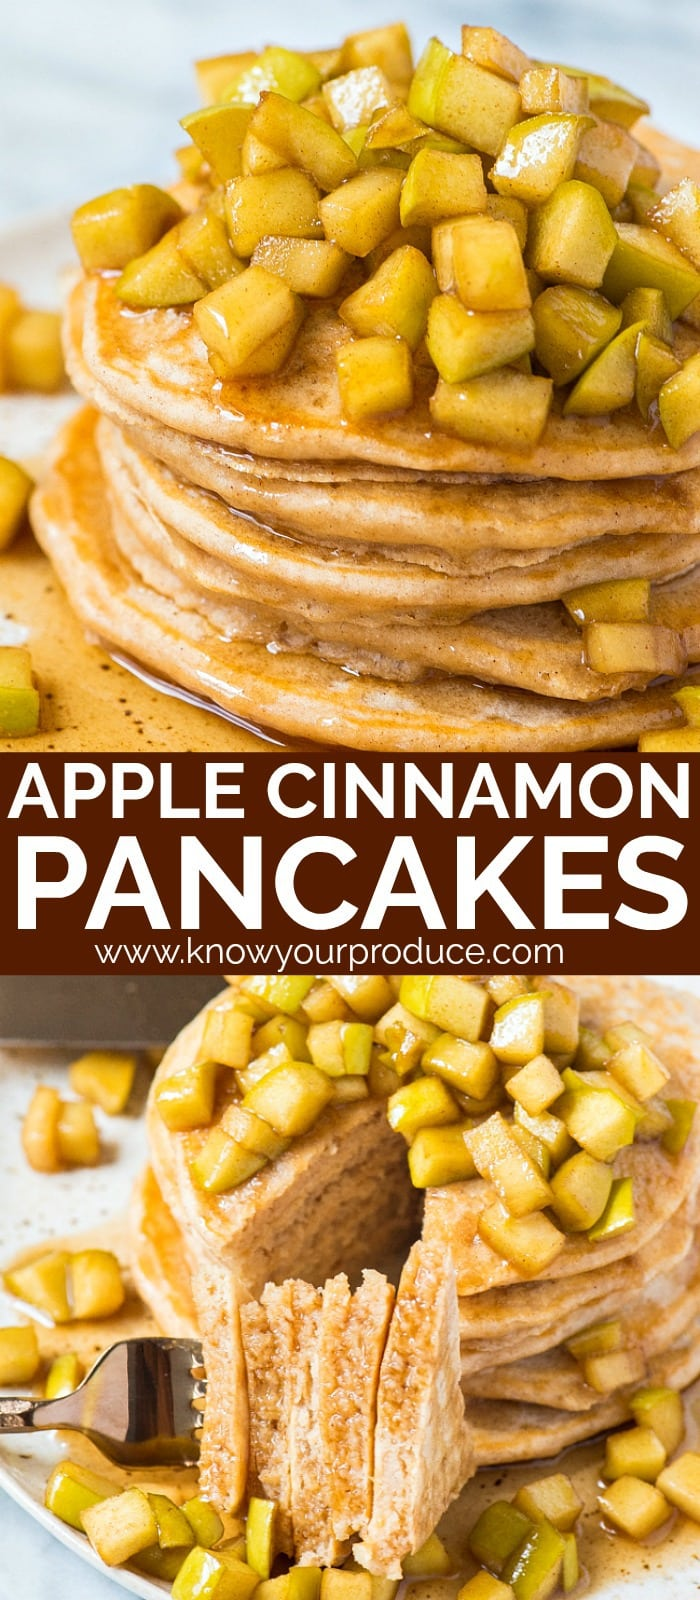 Apple Cinnamon Pancakes with apples with cinnamon in warm maple syrup